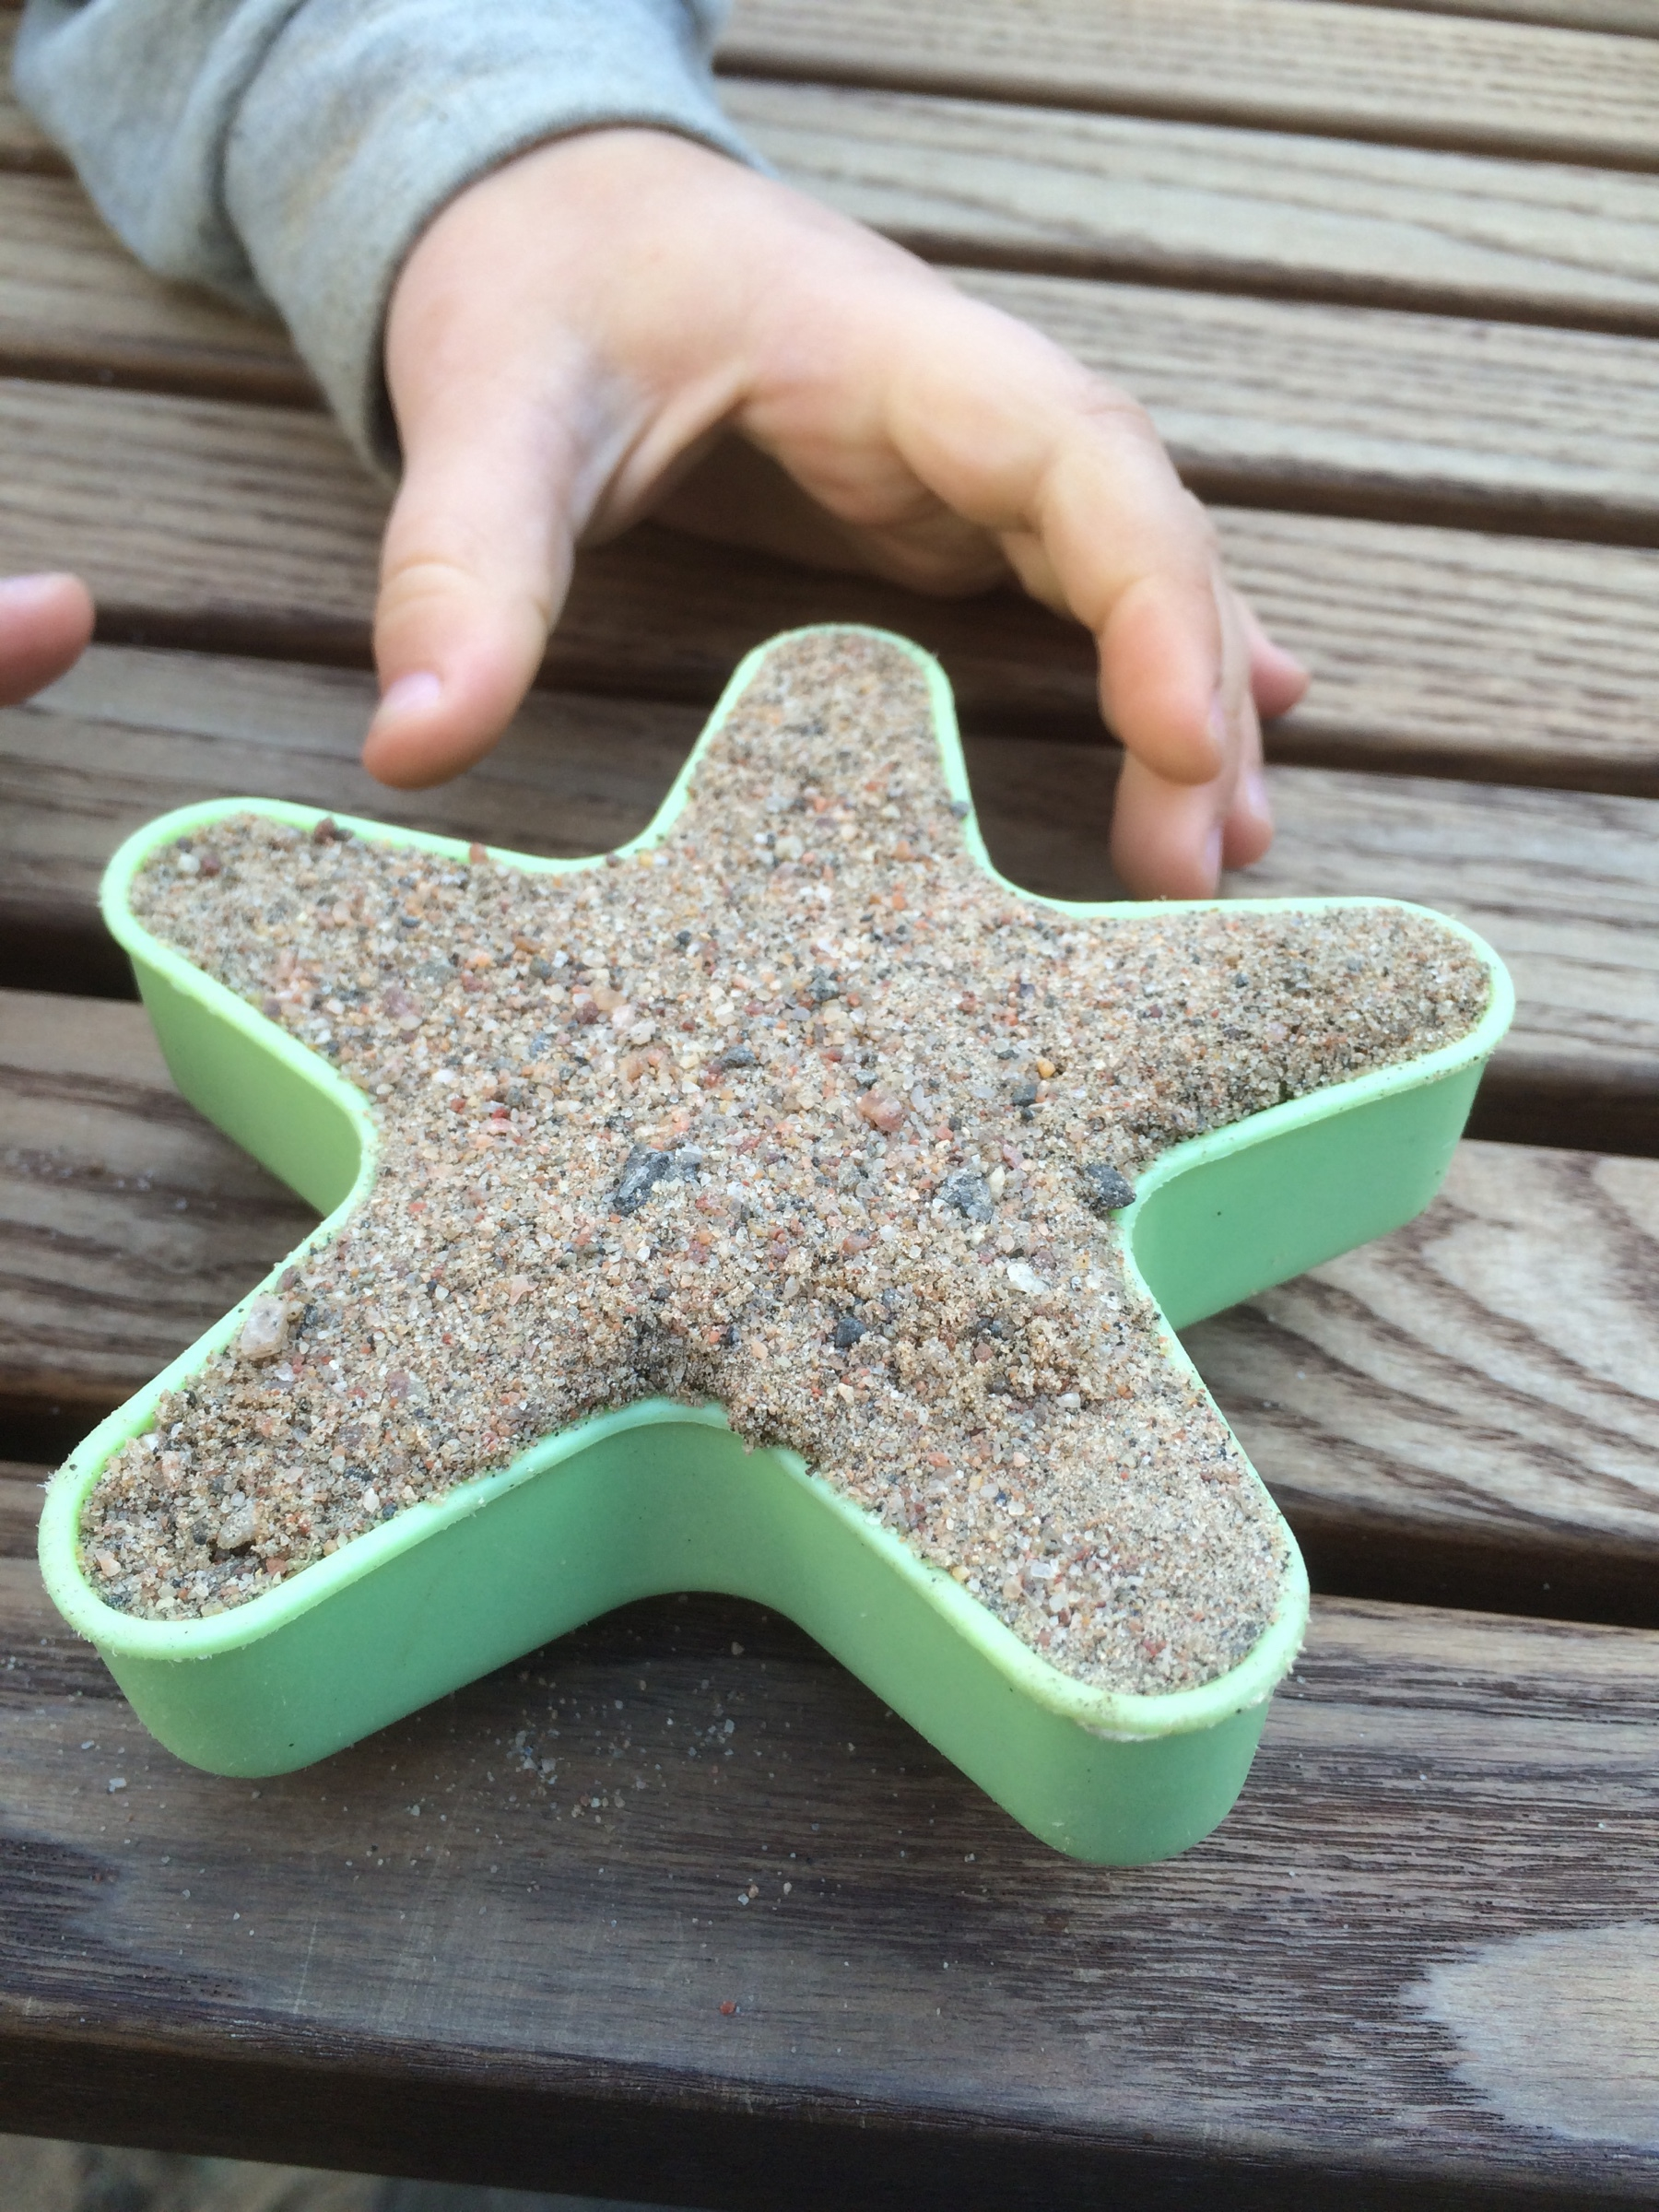 star shaped mold full of sand. delicious looking sand cake and a hand